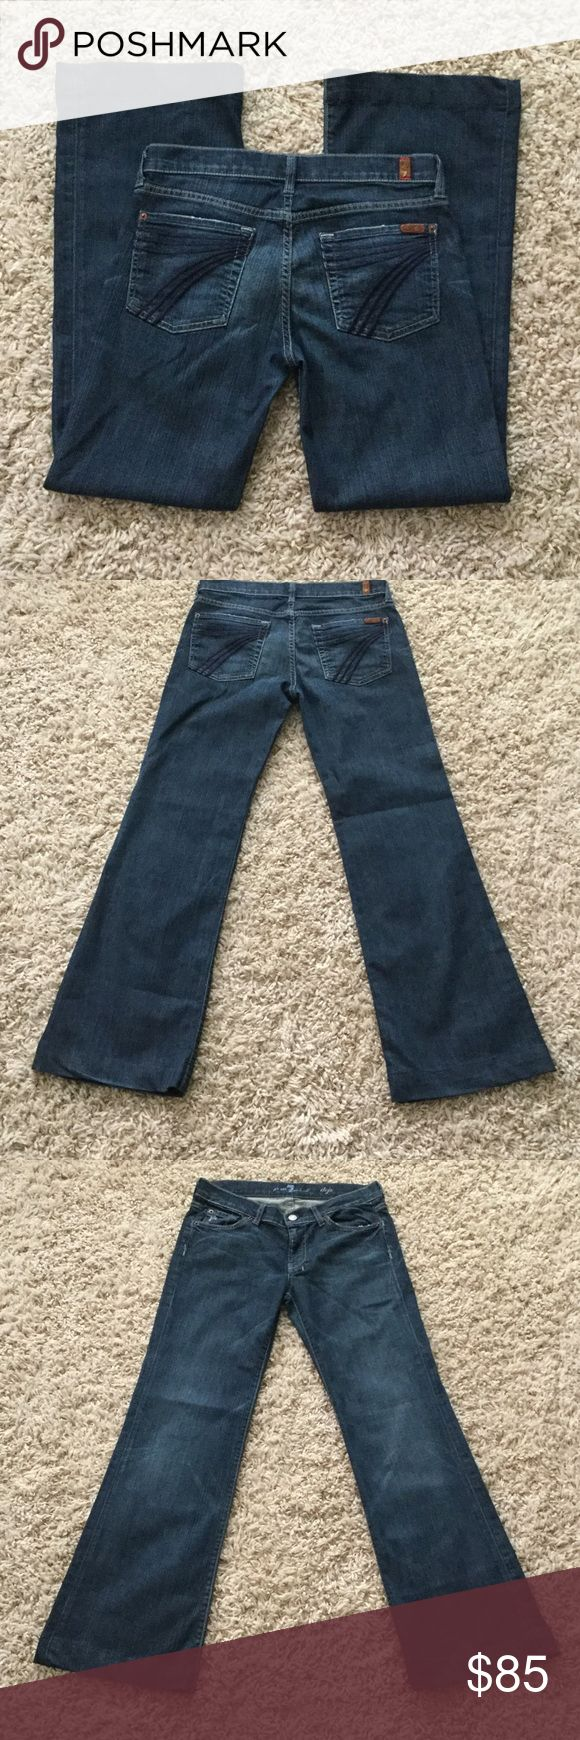 Seven for all mankind size 27 inseam 31 inches Nice looking jeans. 7 For All Mankind Jeans Flare & Wide Leg